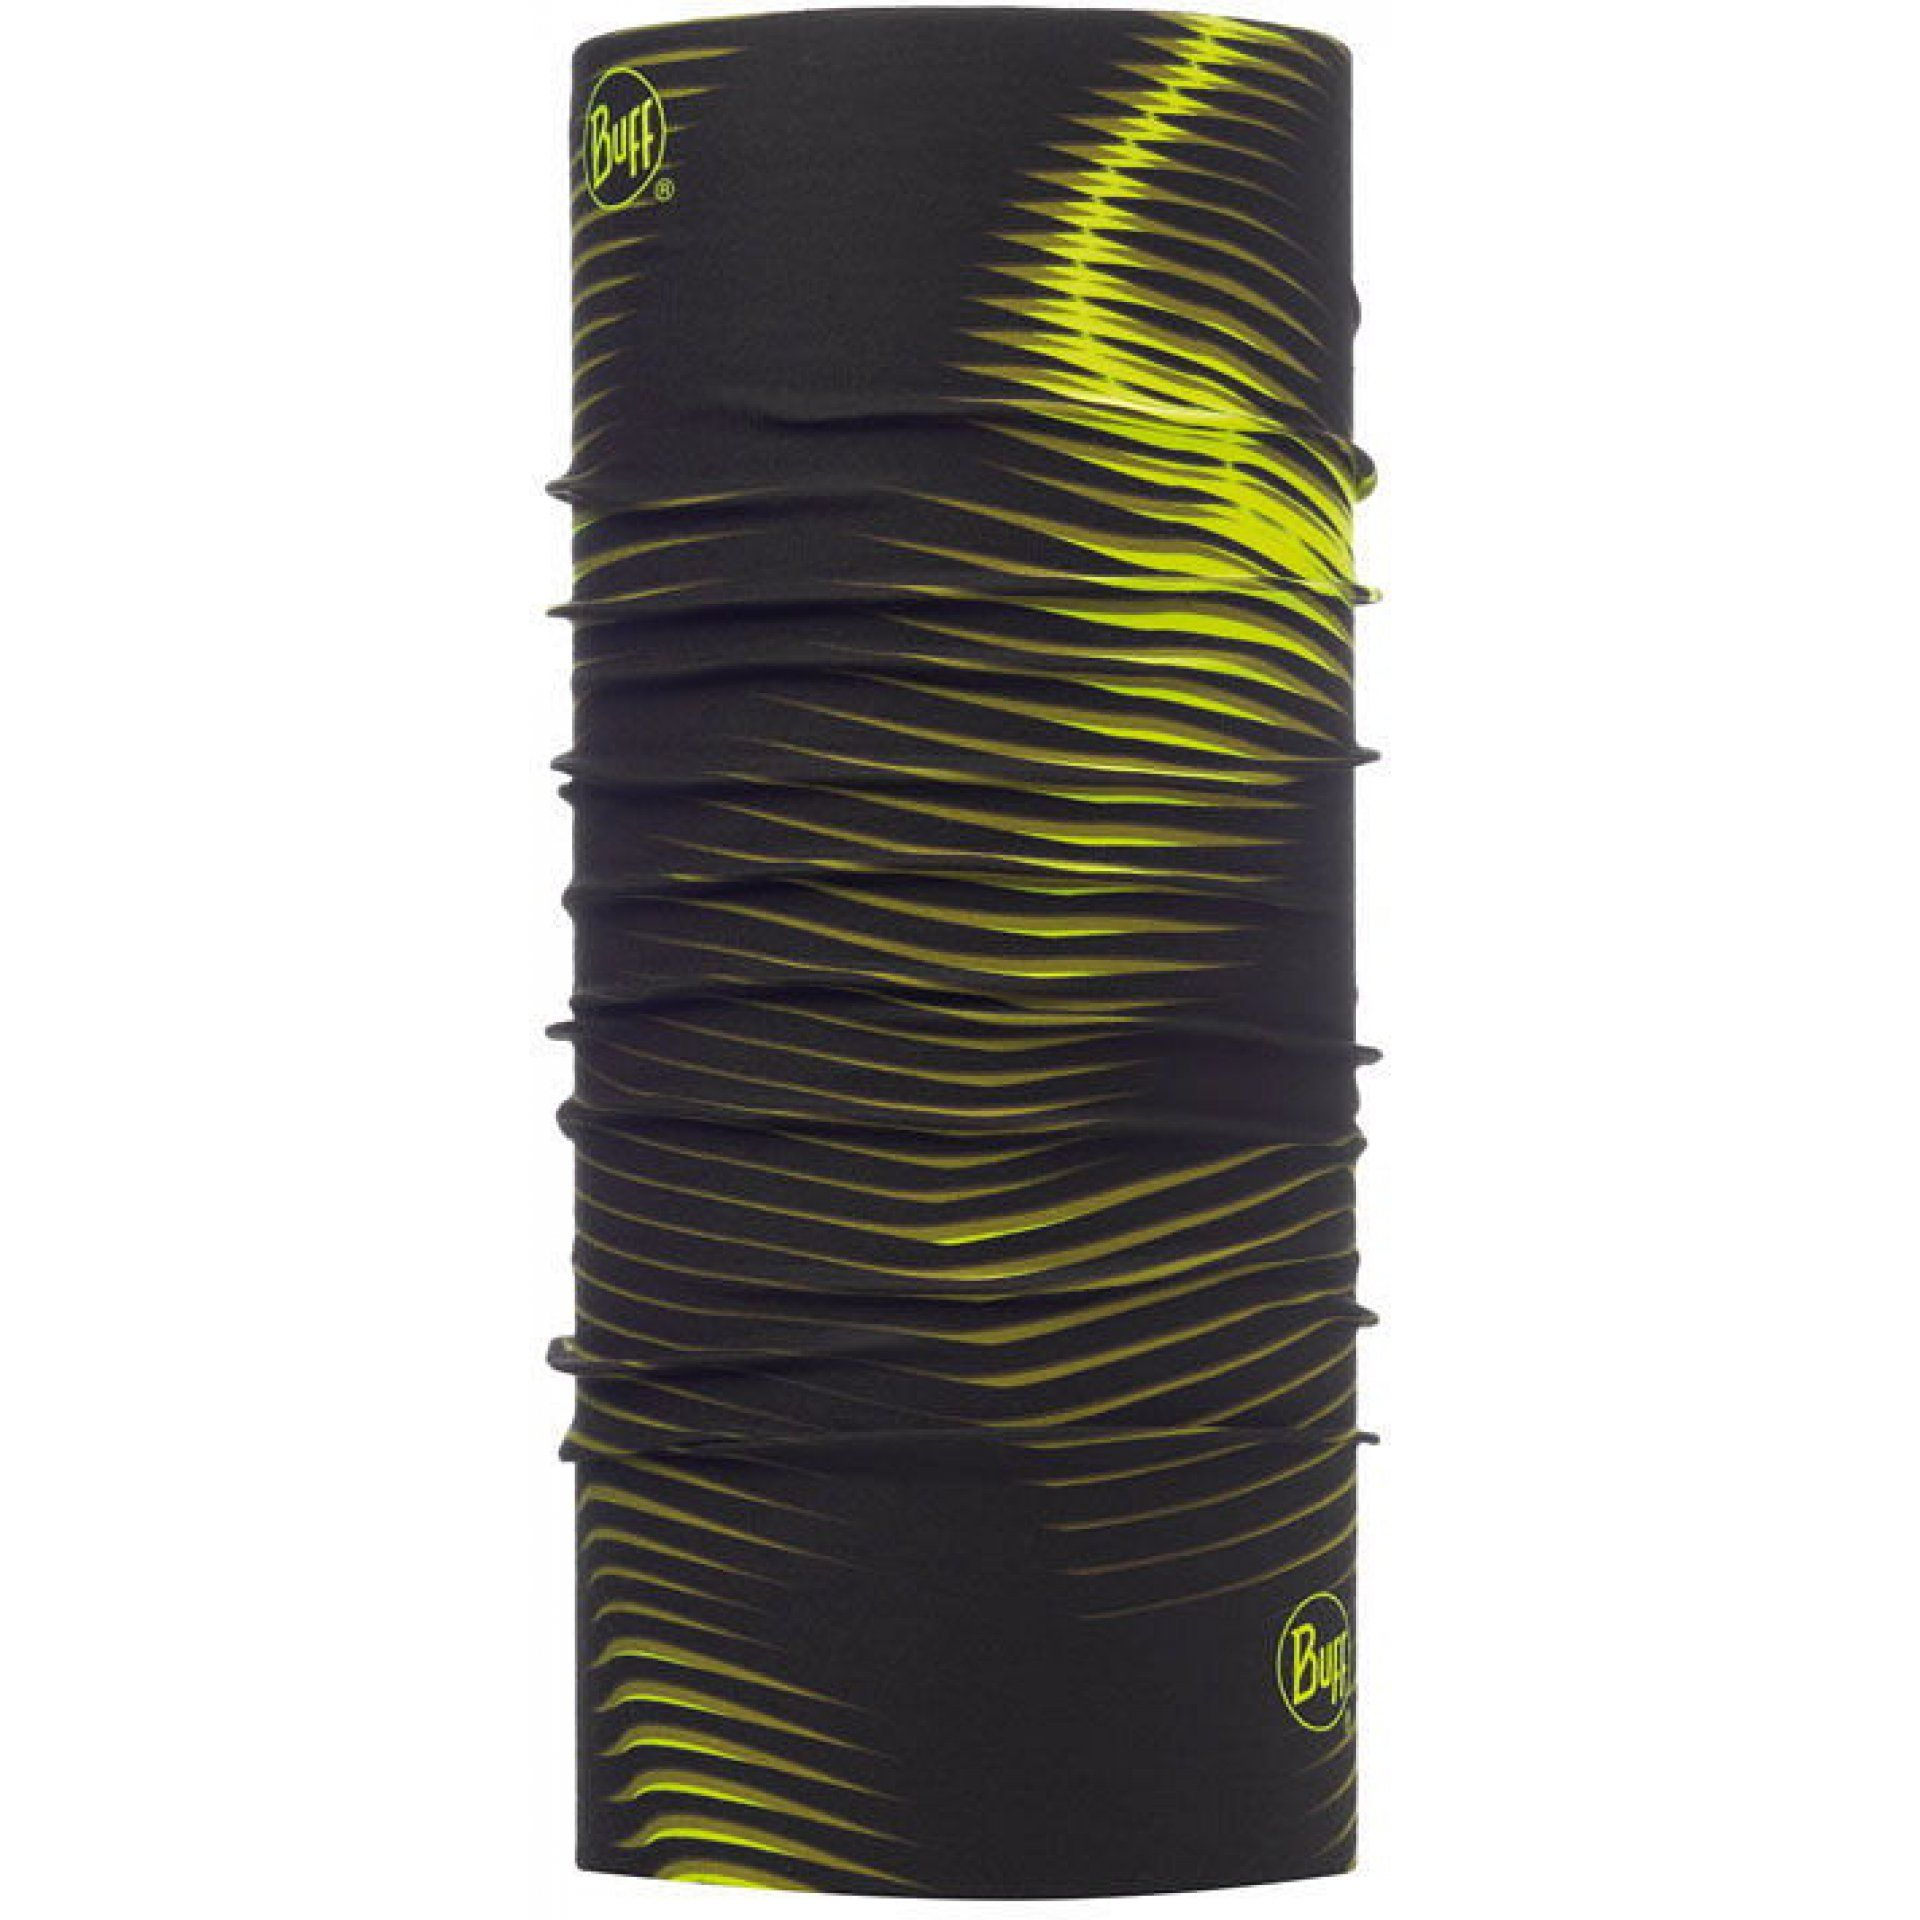 CHUSTA BUFF HIGH UV PROTECTION OPTICAL YELLOW FLUOR